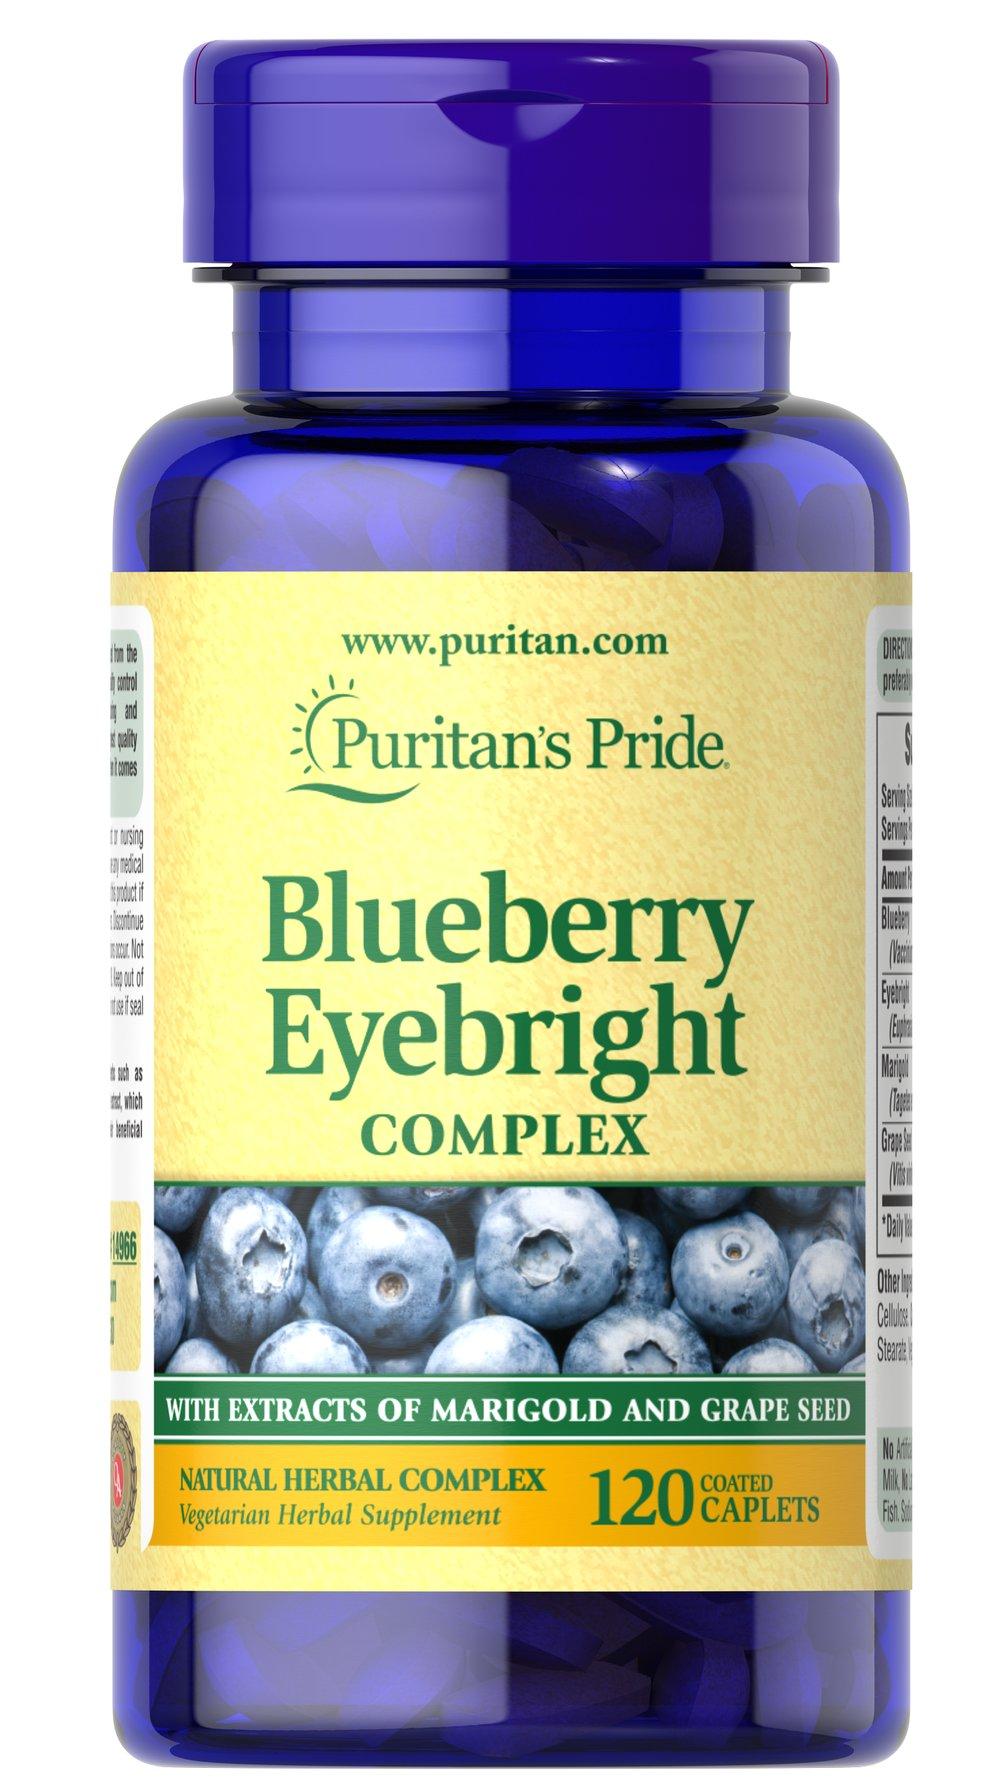 Blueberry Eyebright Complex  120 Caplets  $23.99